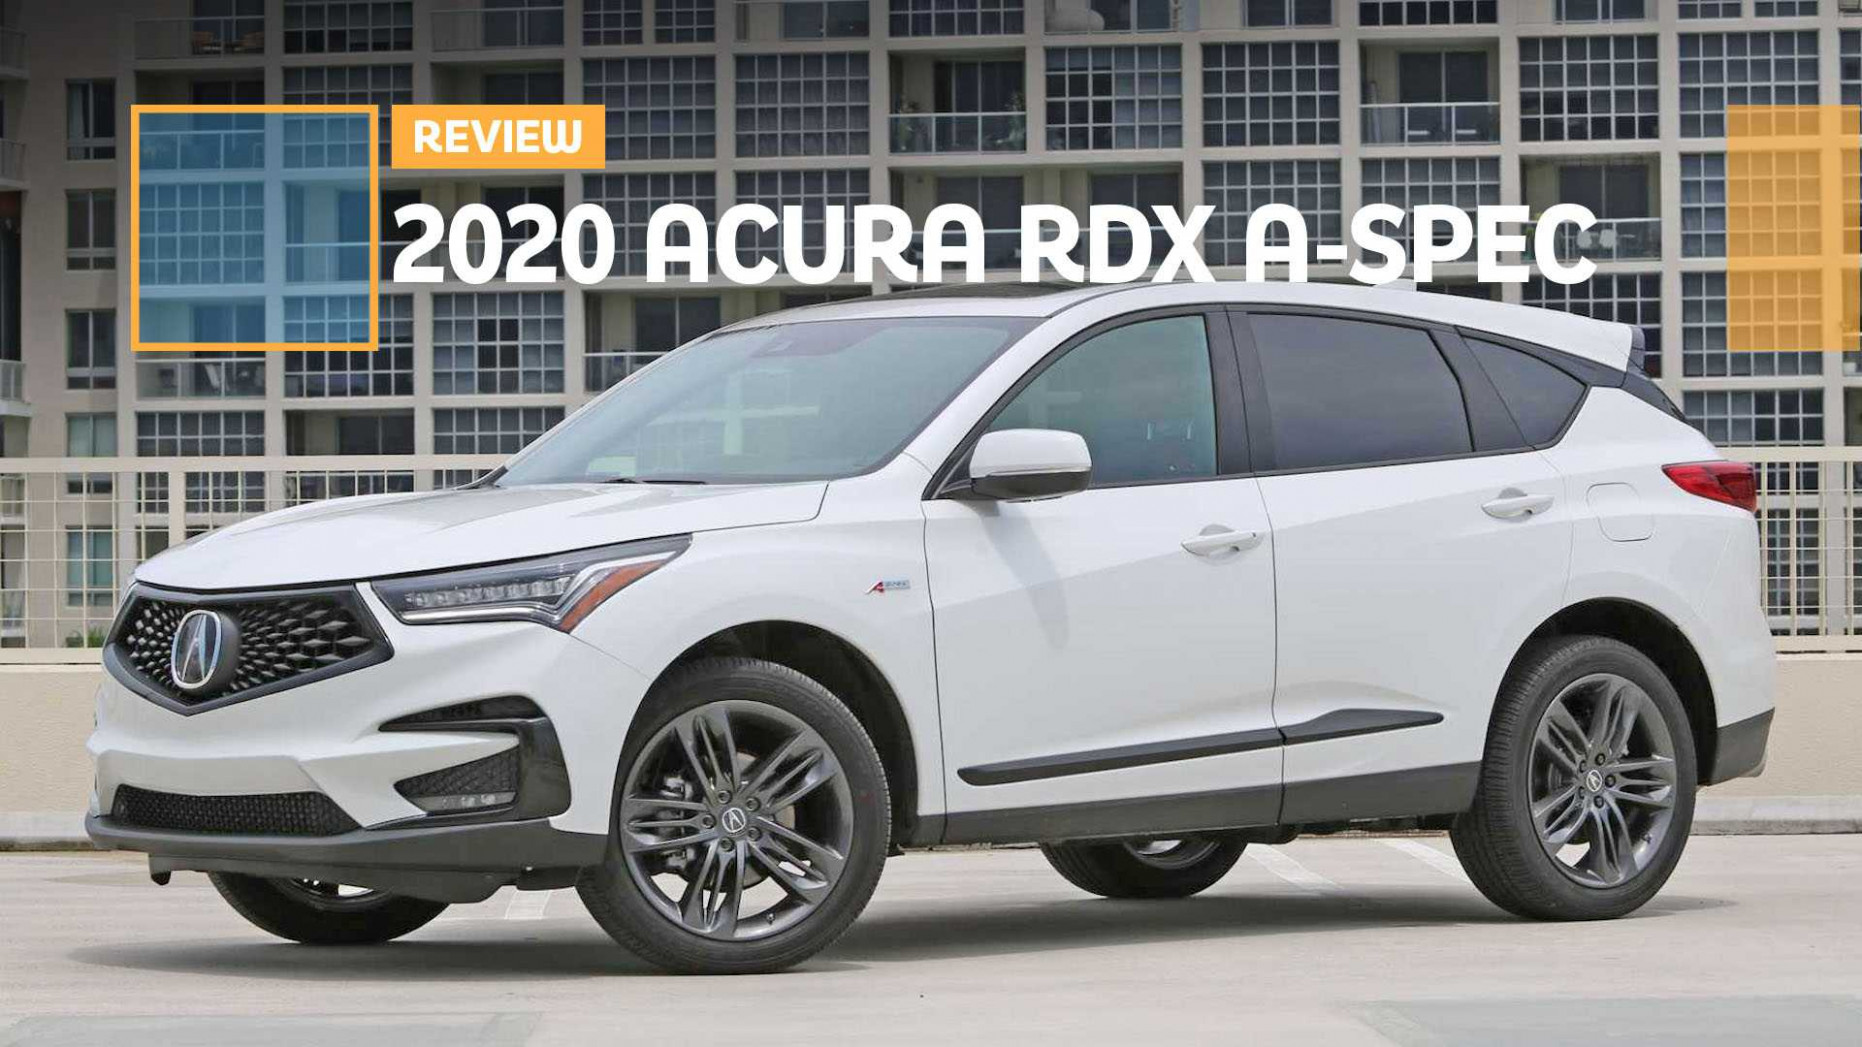 6 Acura RDX A-Spec Review: The A-Spec Team